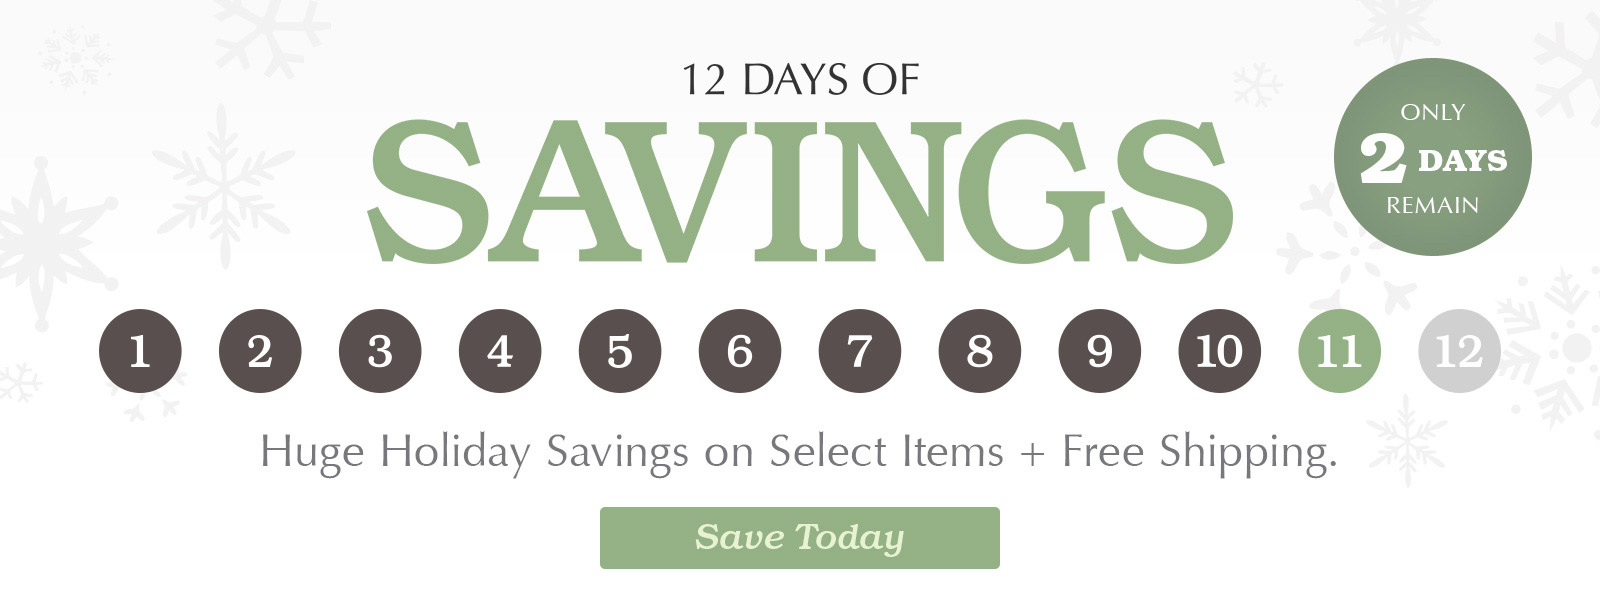 Shop our 12 Days of Savings